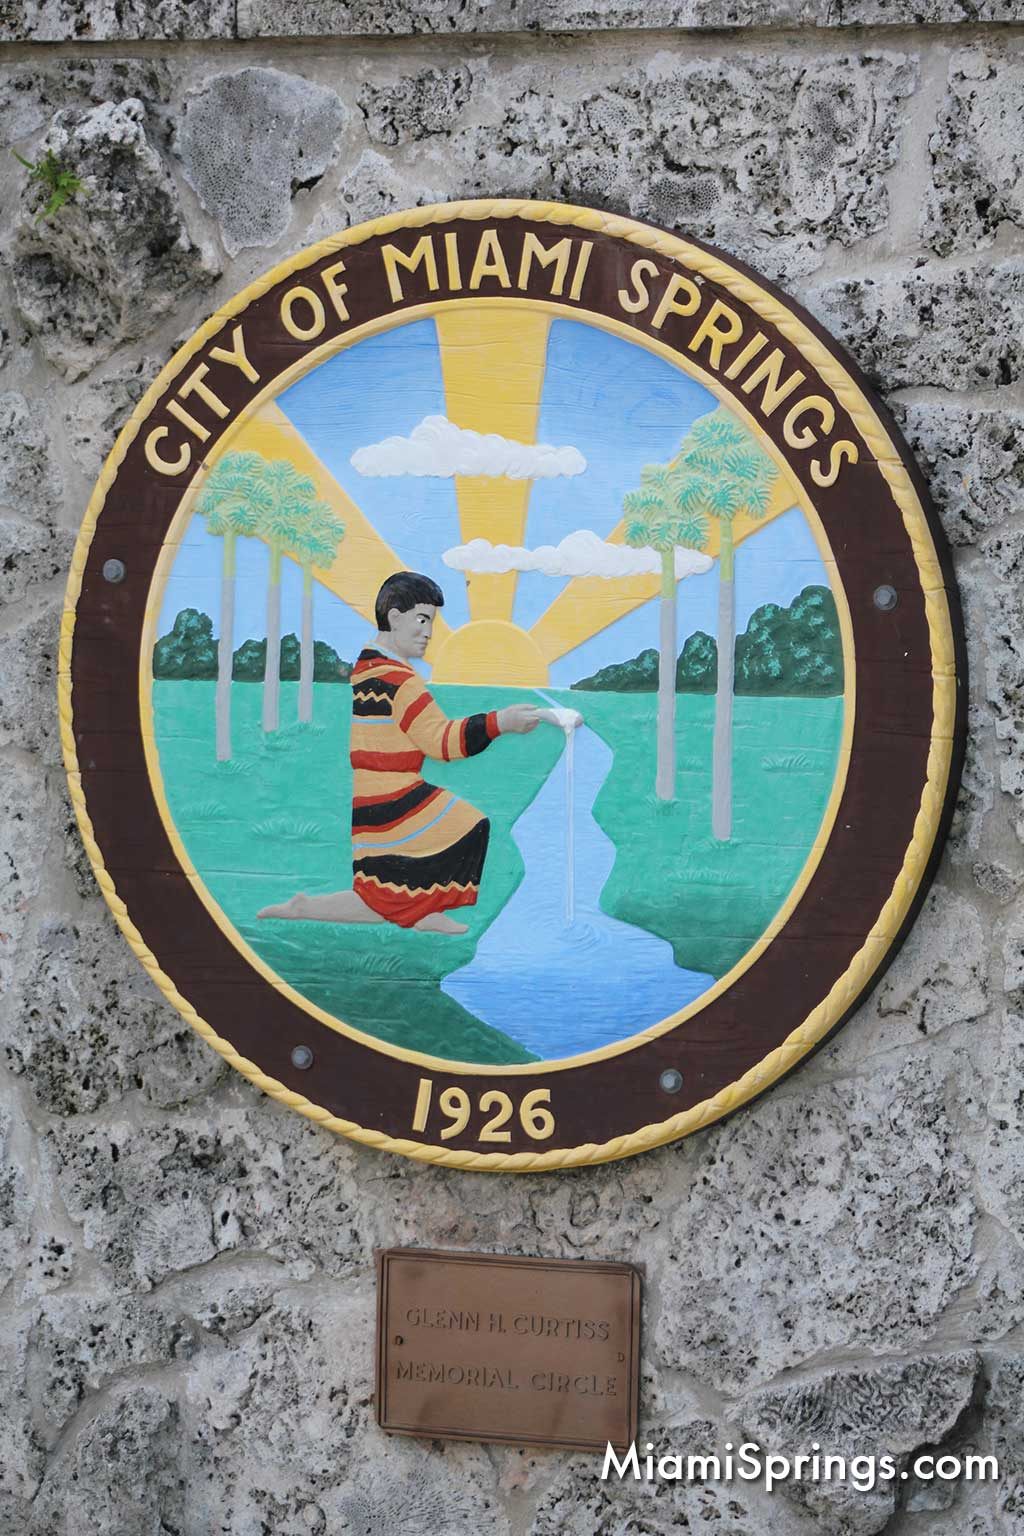 City of Miami Springs Seal